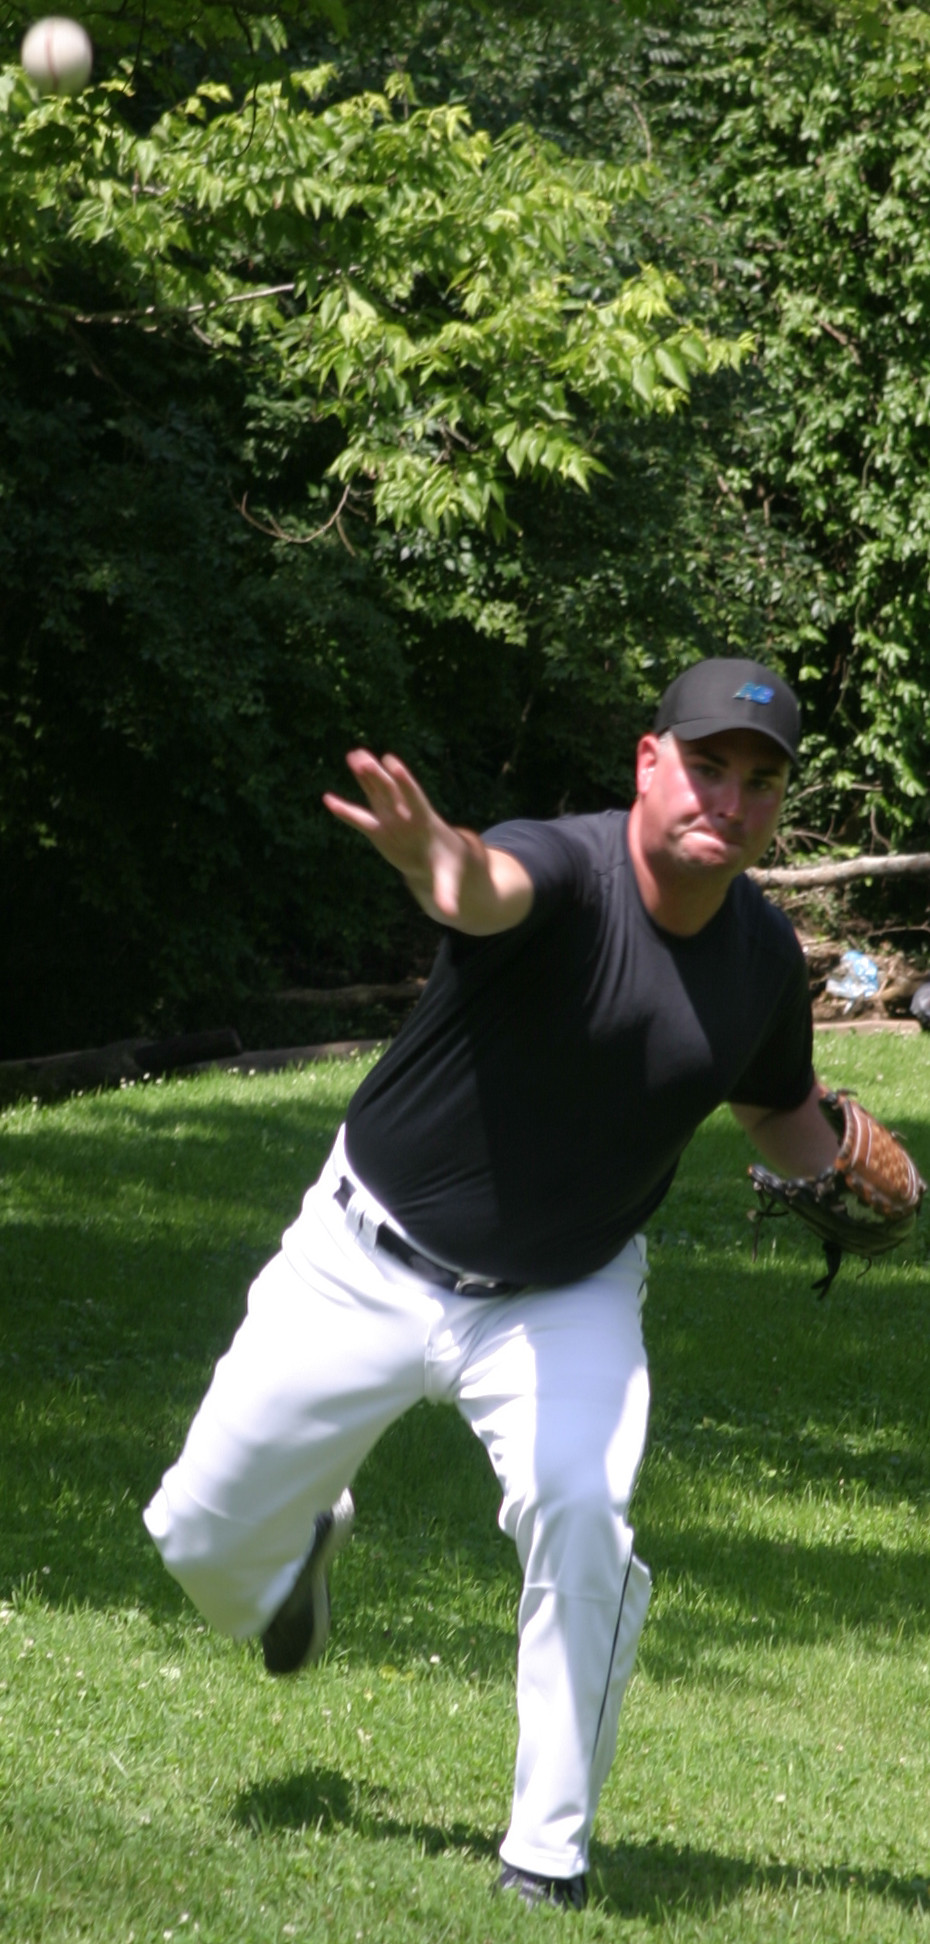 """TERRELL RENFRO took it easy during a Monday pitch-and-catch session at Big Spring Park, which may have saved the photographer a broken lens or bruised kneecap. Of his knuckleball, the 2003 WCHS graduate said, """"I have that specialty pitch - that always increases your chances."""" (Photo by John McGary)"""